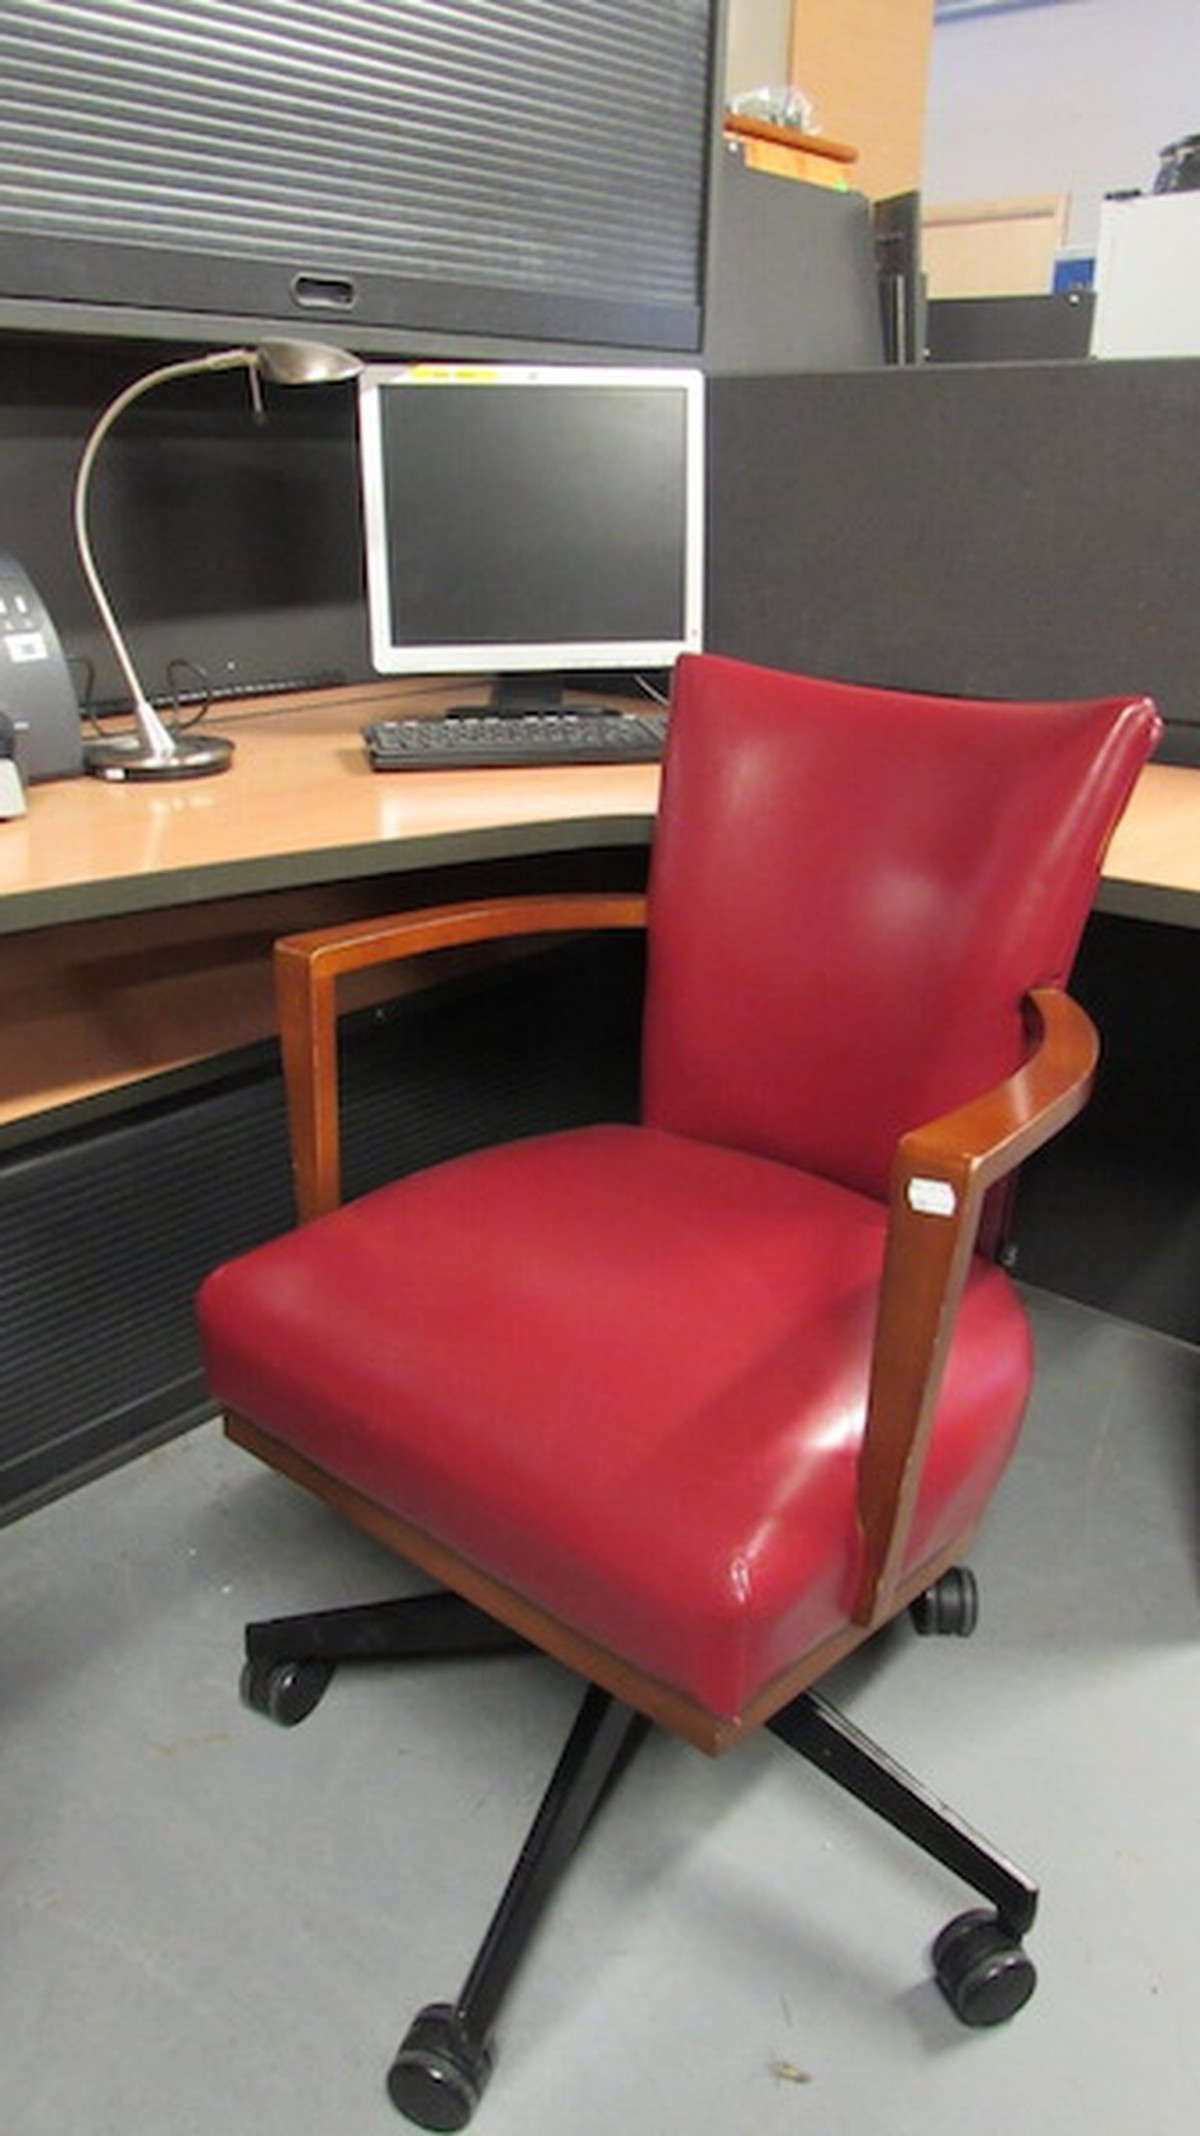 swivel chair sale uk swing online olx secondhand trailers ser logistics ltd sussex 10x red